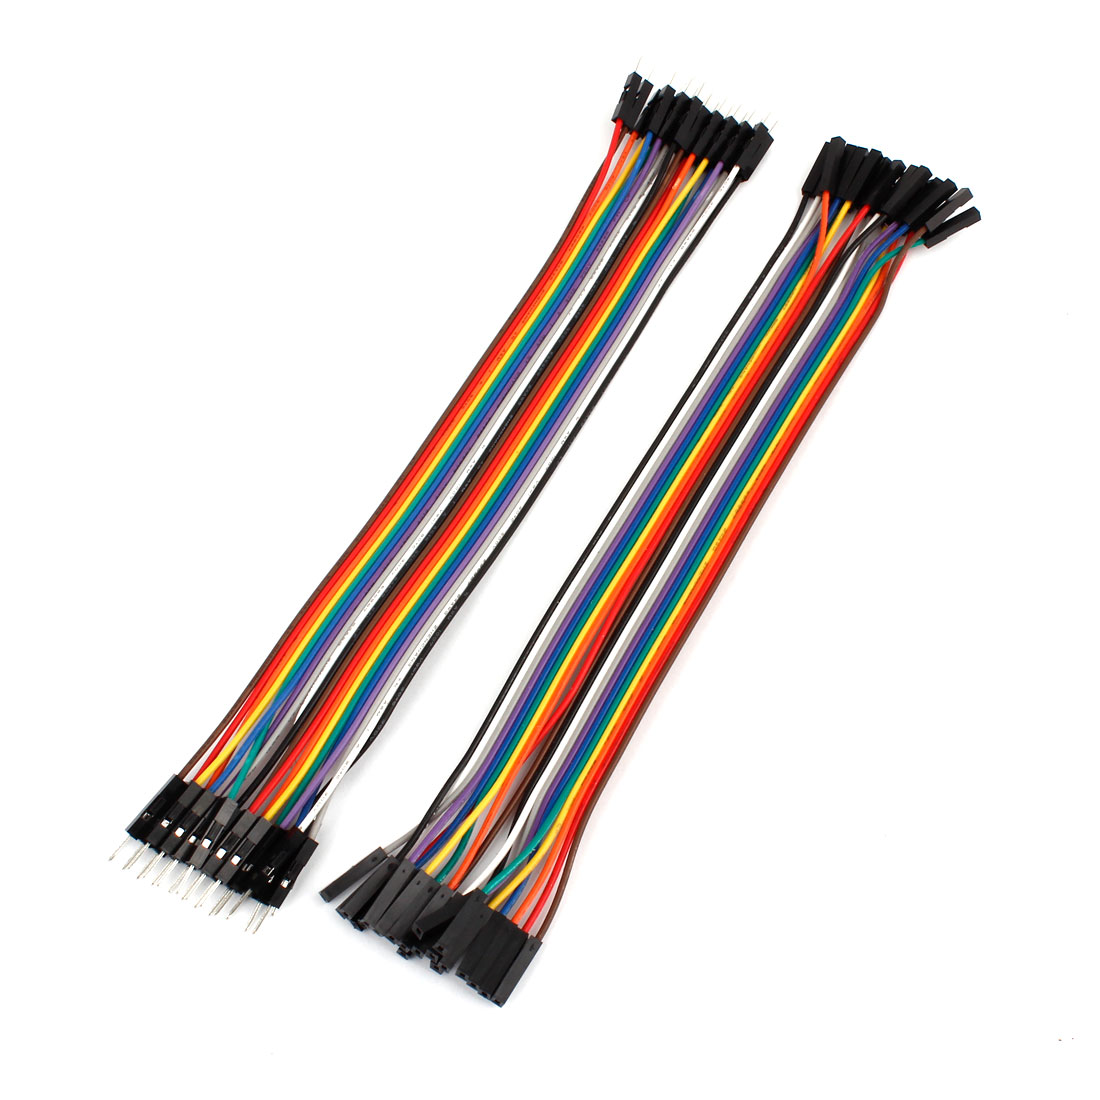 2Pcs 20cm 2.54mm Colorful M/M F/F 20Pin Cable Connector Jumper Wire Line